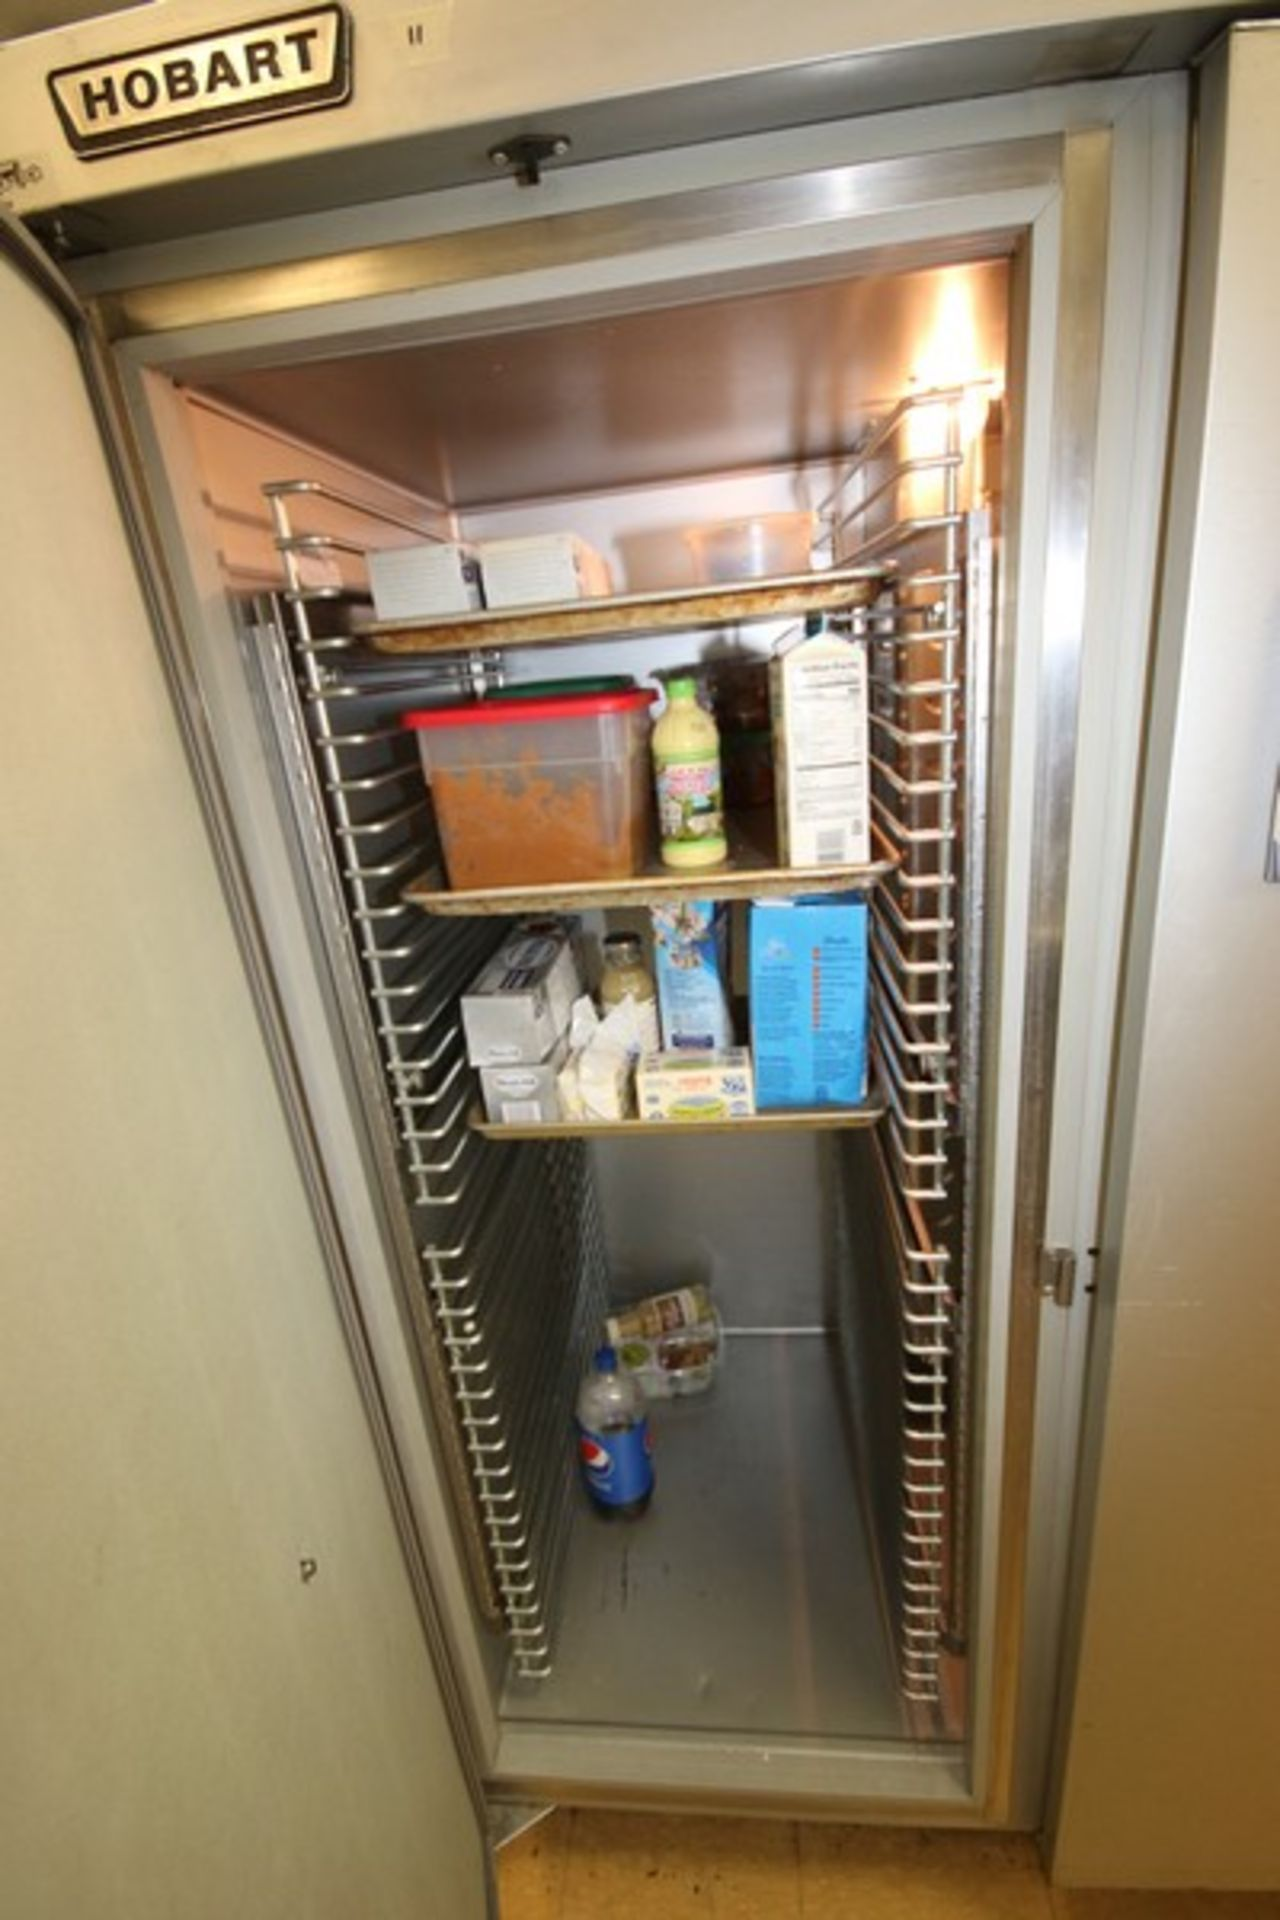 """Hobart 3-Compartment S/S Refrigerator, M/N OFR3, S/N 32 544 374, Overall Dims.: Aprox. 83"""" L x 33"""" W - Image 4 of 6"""